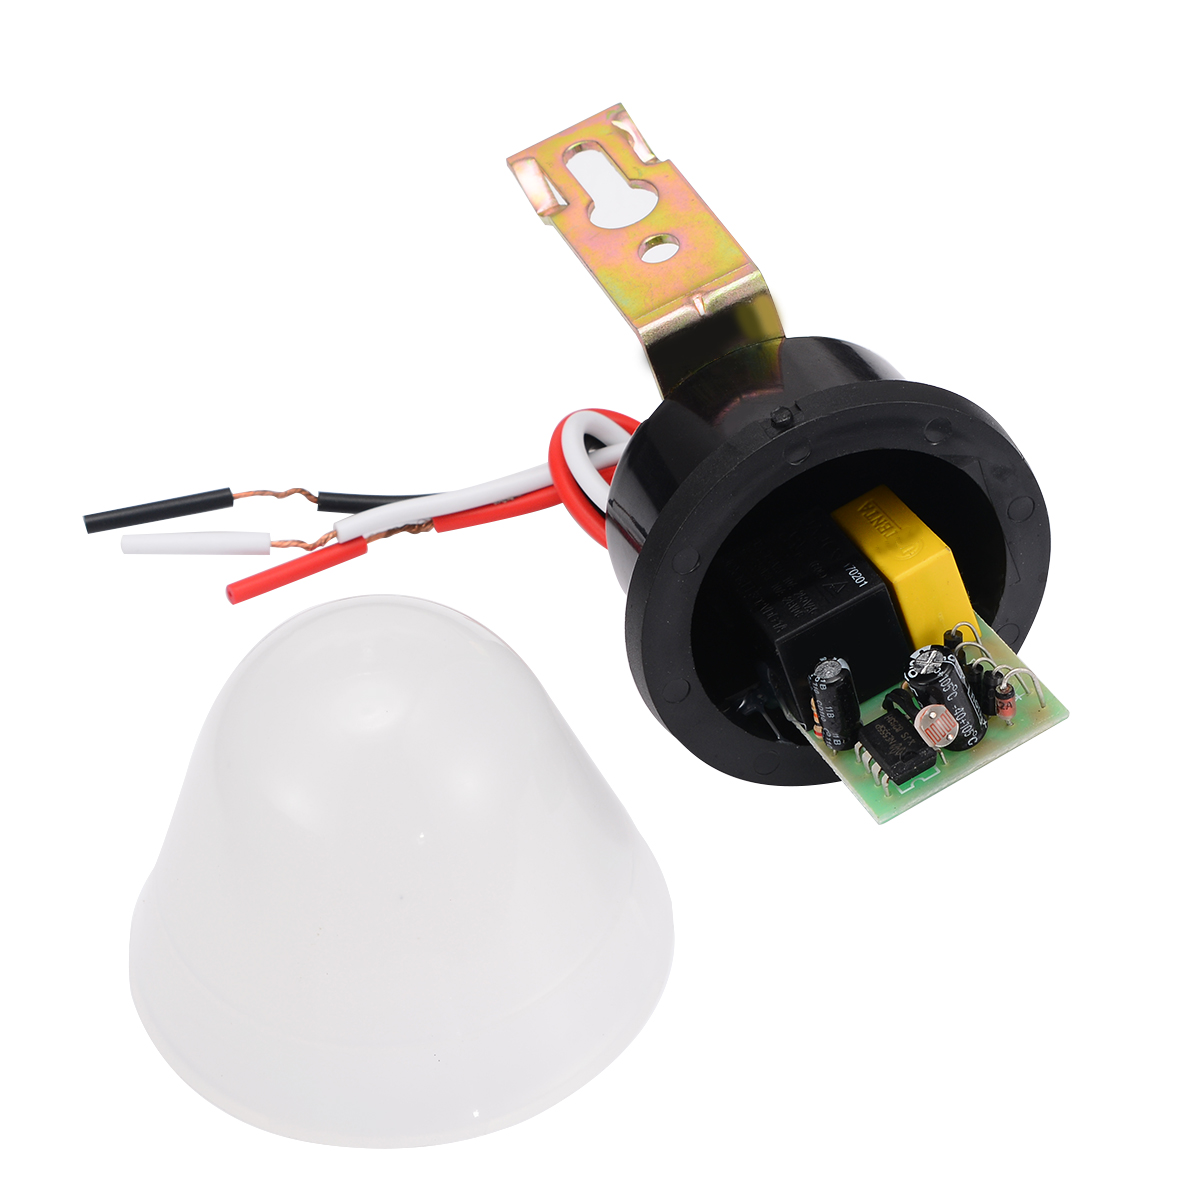 Automatic Light Sensor Photo Control Switch Mayitr Relay Photoswitch 180-240V for Outdoor Street Llighting Lamp LED Lights